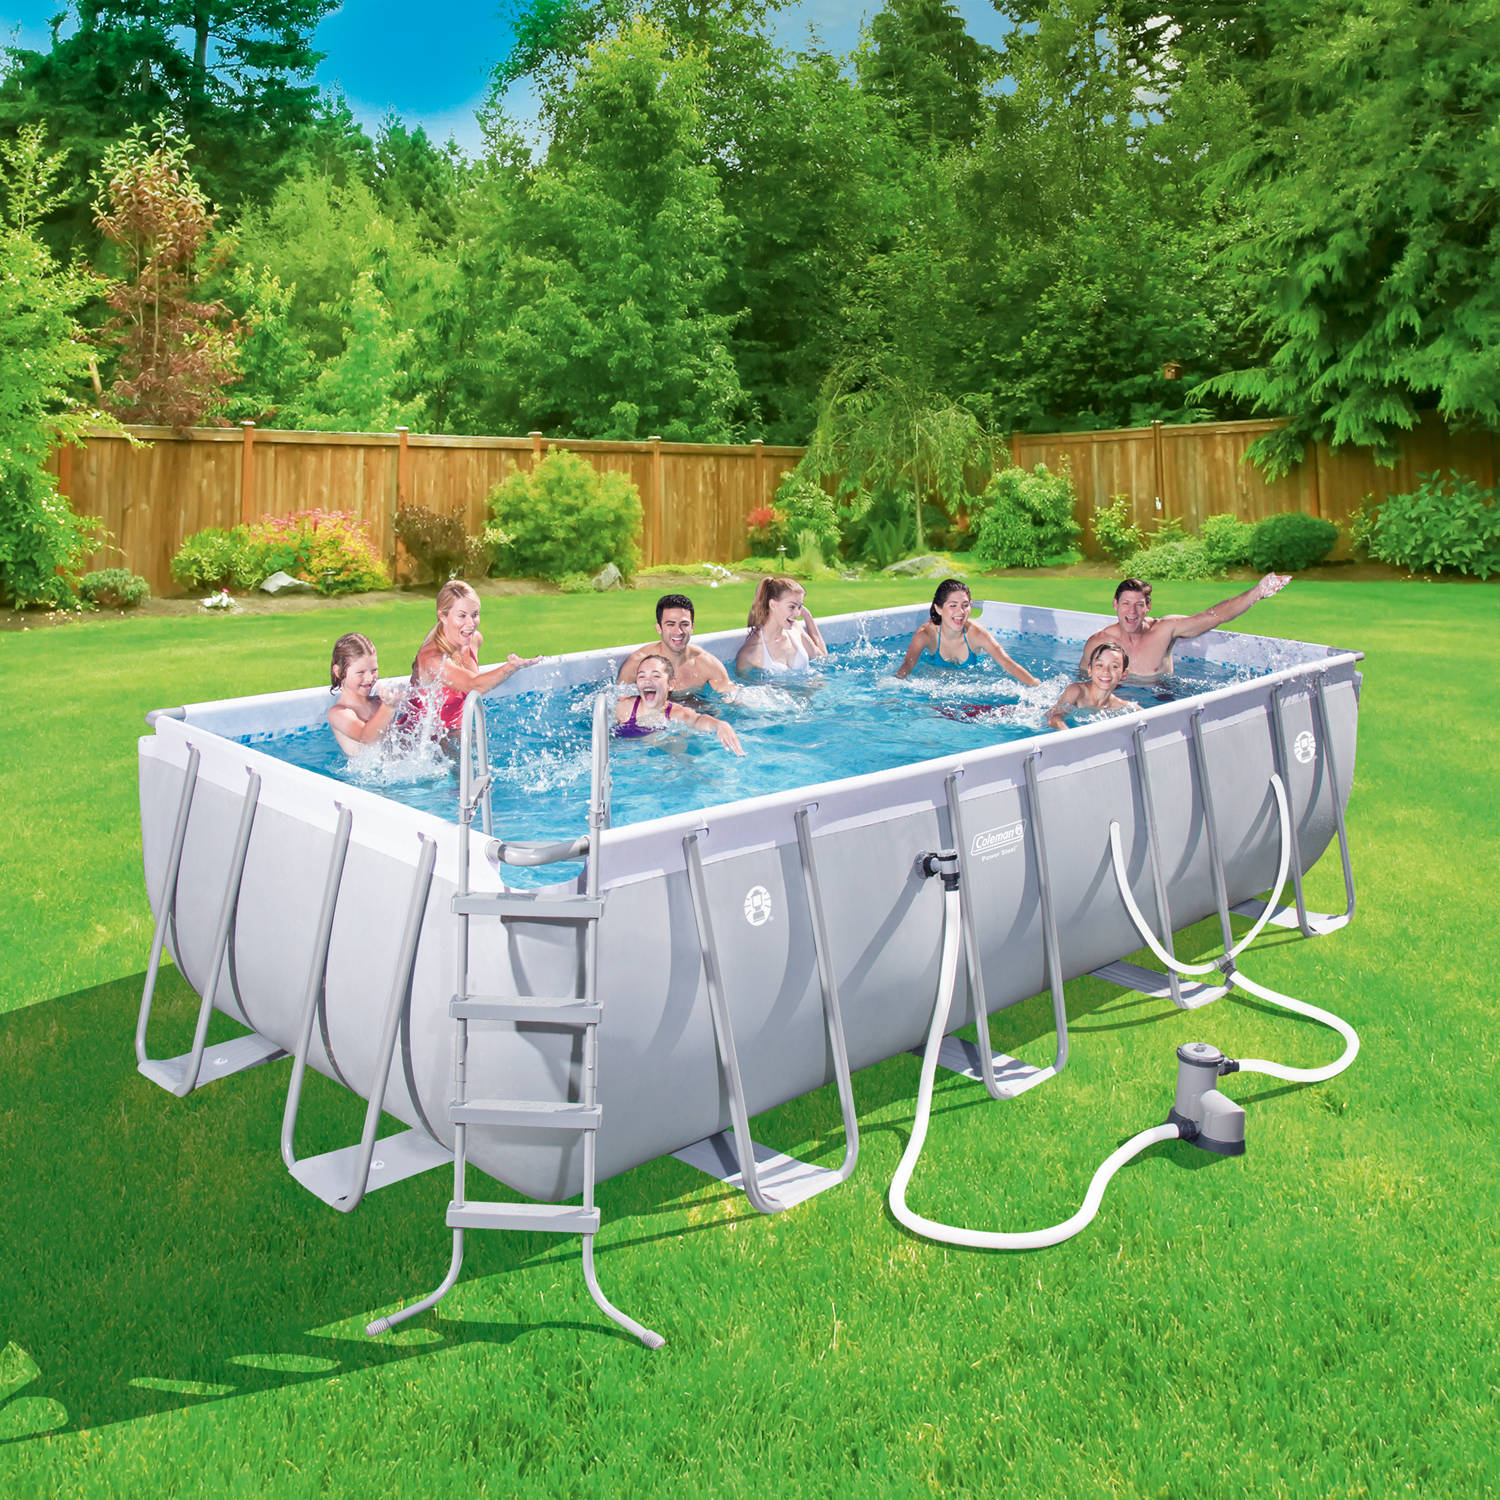 "Coleman Power Steel 18' x 9' x 48"" Rectangular Frame Swimming Pool Set by Bestway Inflatables & Material Corp."